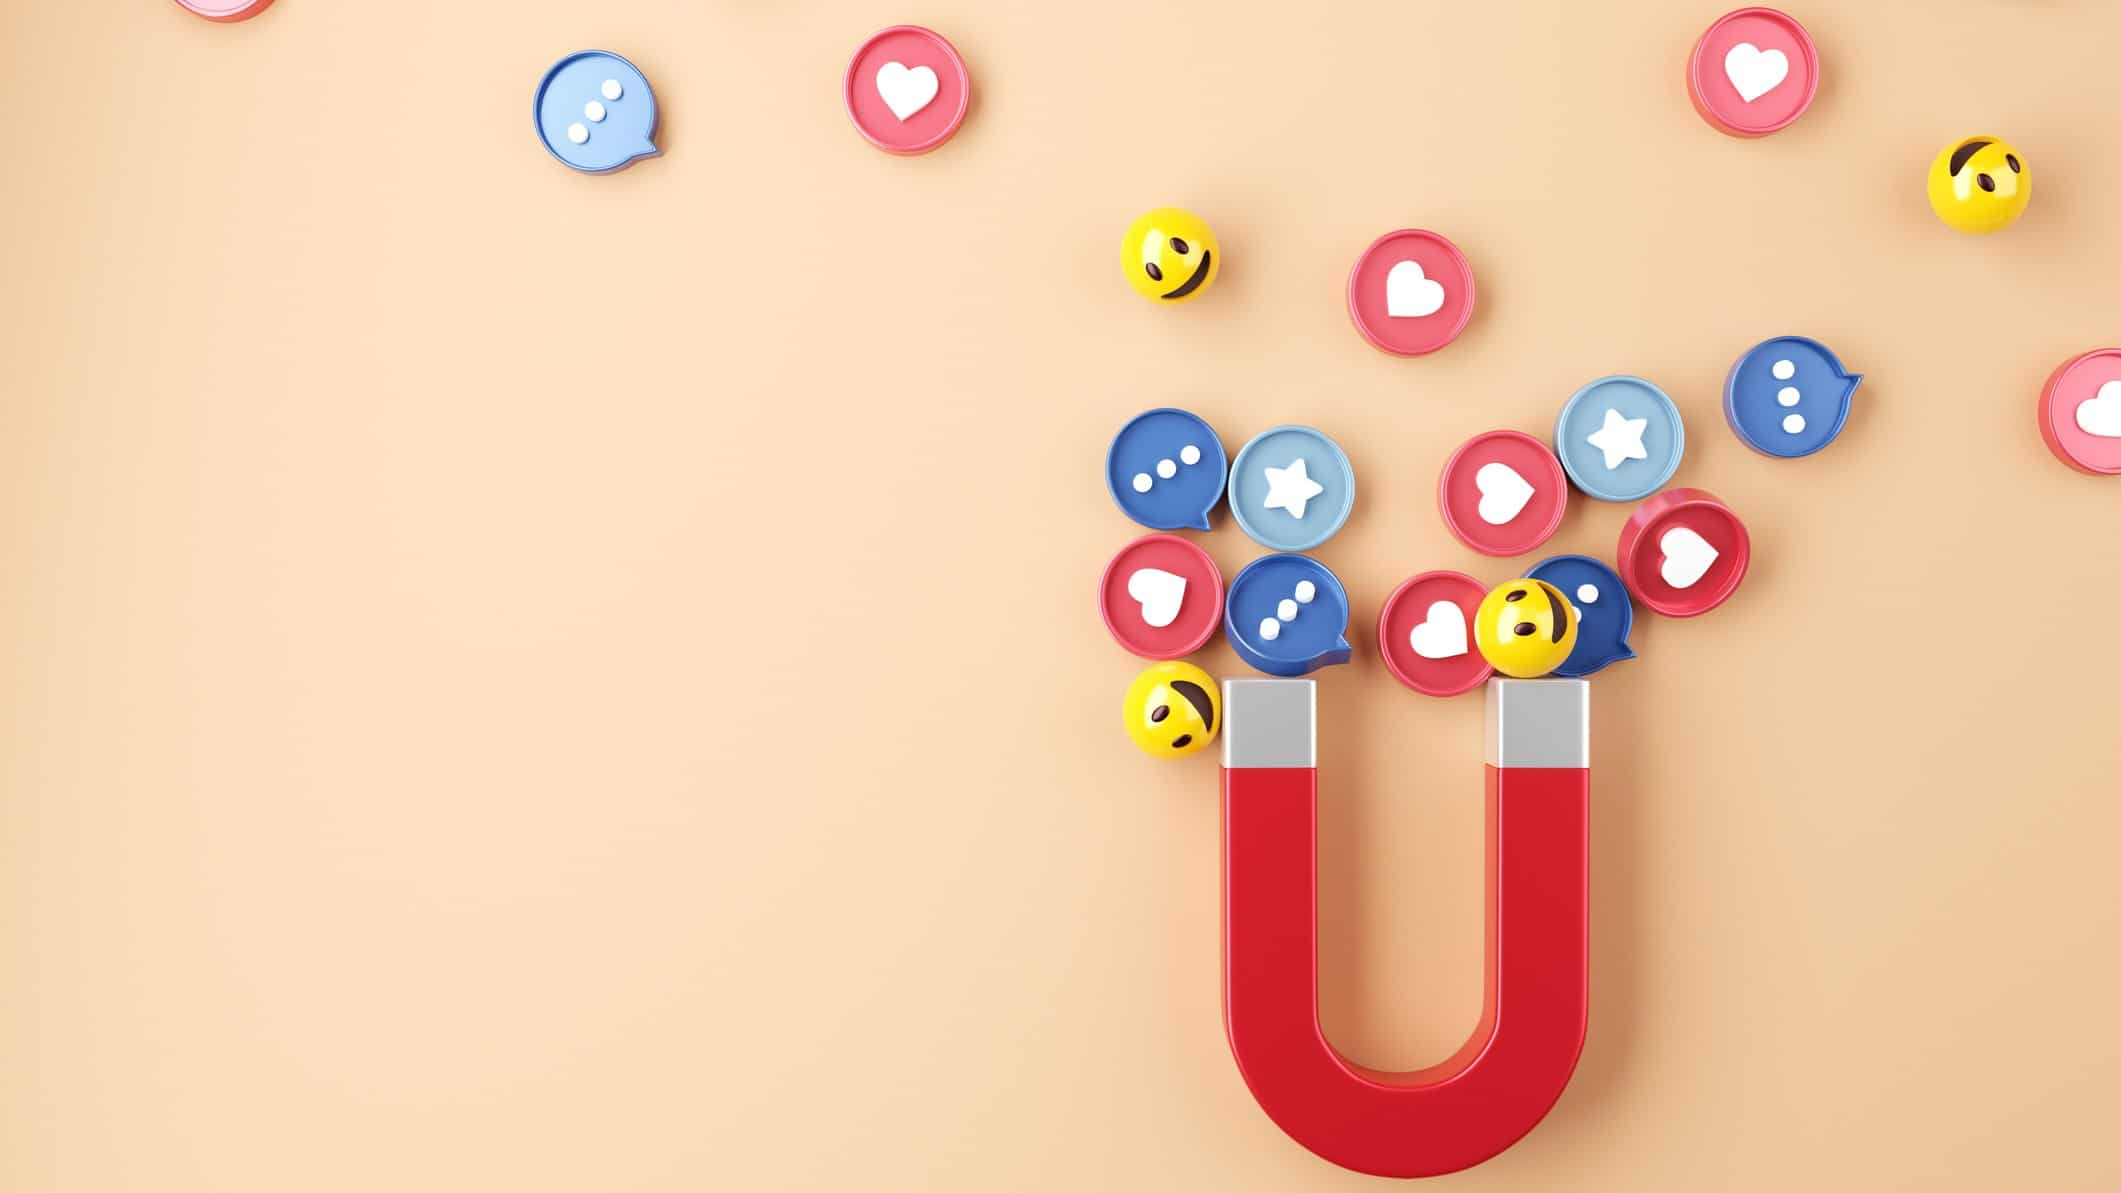 social media shares represented by magnet attracting various emojis